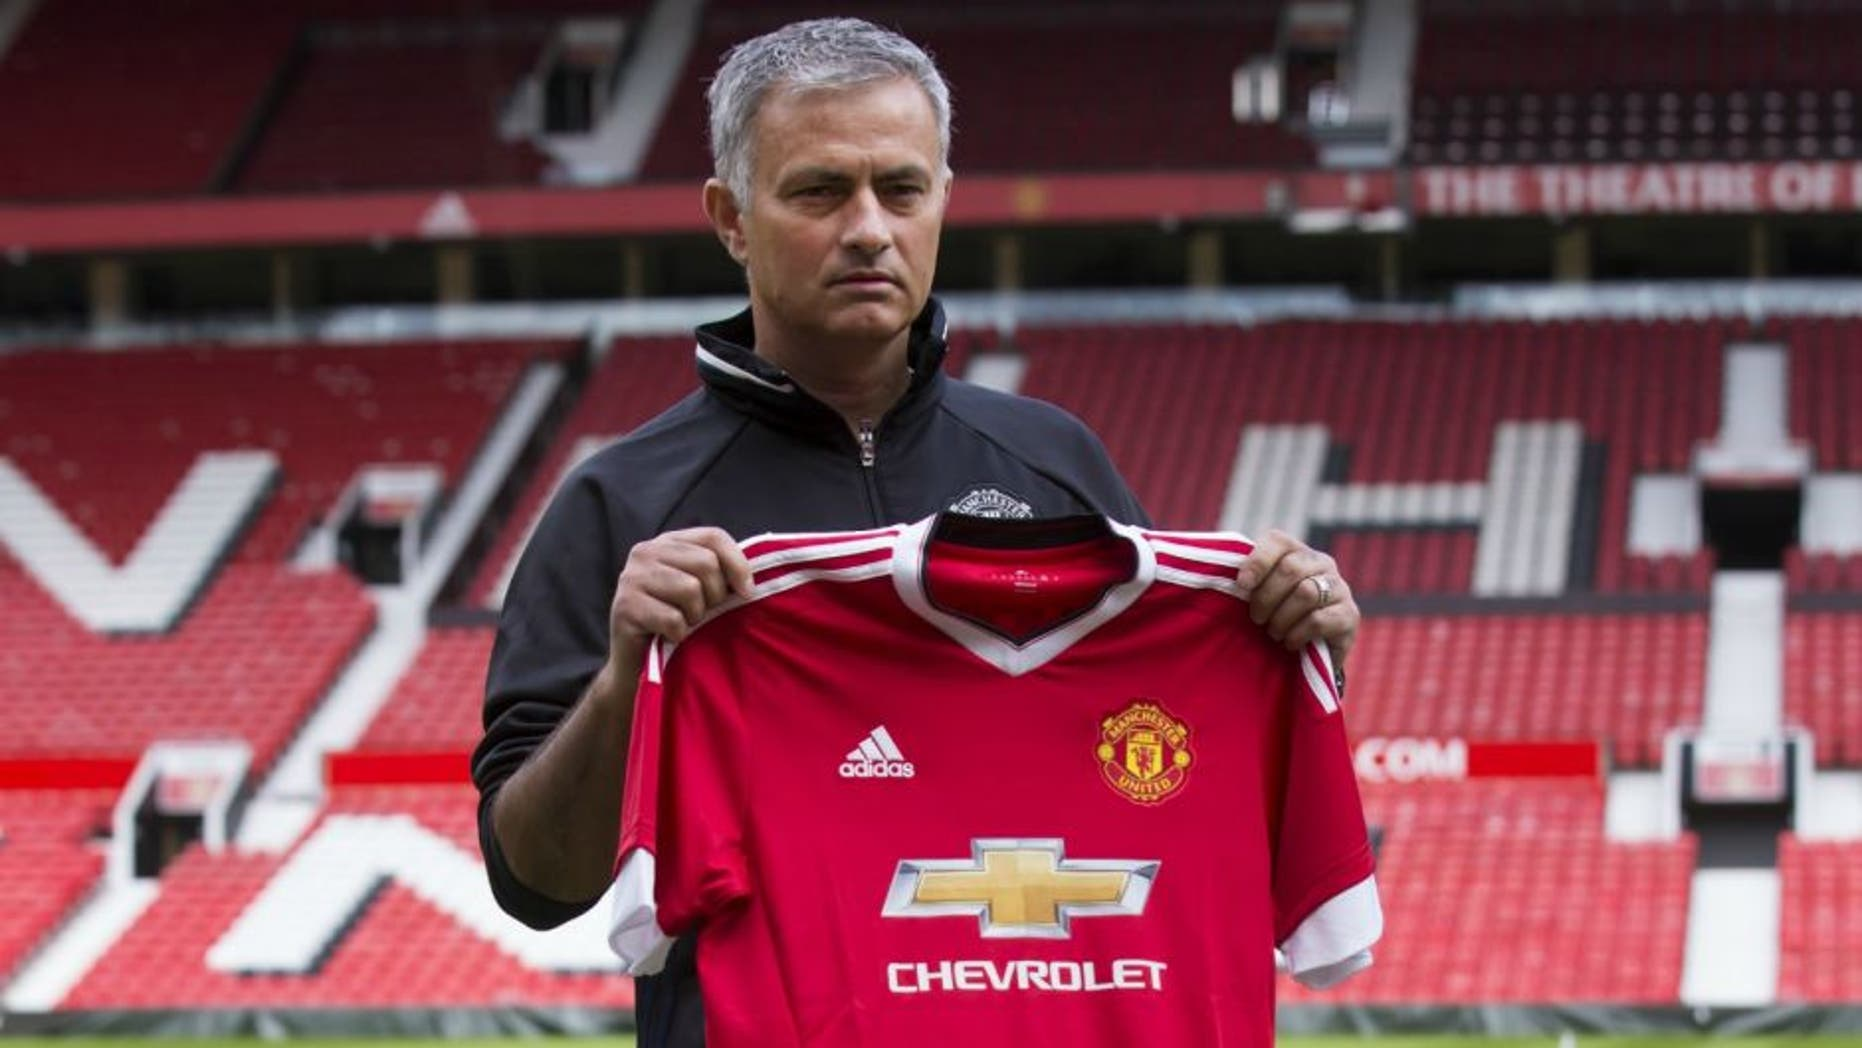 MANCHESTER, UNITED KINGDOM - JULY 5: Manchester United's new manager Jose Mourinho poses for pictures during a photocall at the club's Old Trafford Stadium on July 5, 2016 in Manchester, England. (Photo by Jon Super/Anadolu Agency/Getty Images)